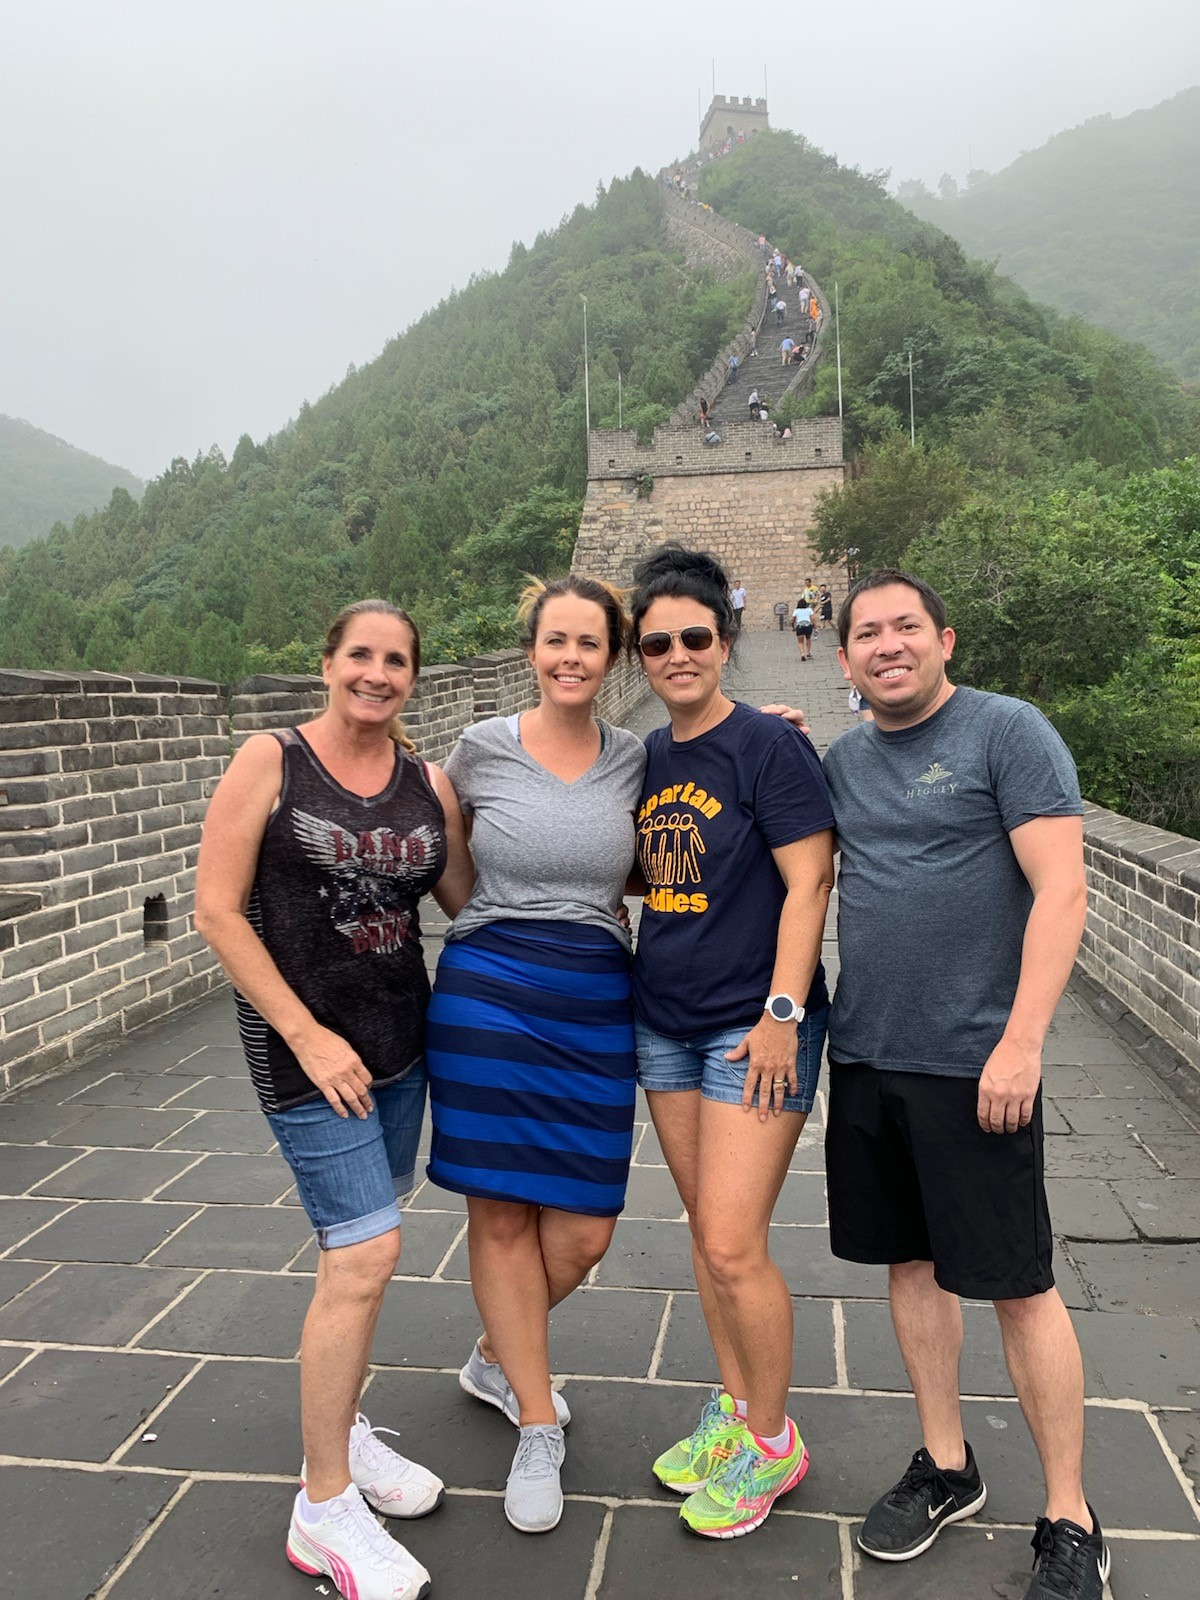 Higley Unified School District Teachers Kathy Kalinke From Power Ranch Elementary And Haleigh Rohner, Beth Knudsvig, And Brennan Hallock From Sossaman Middle School - Taught Students Various Subjects At A Summer Camp In Shijiazhuang, China. Photo Courtesy Of Higley Unified School District